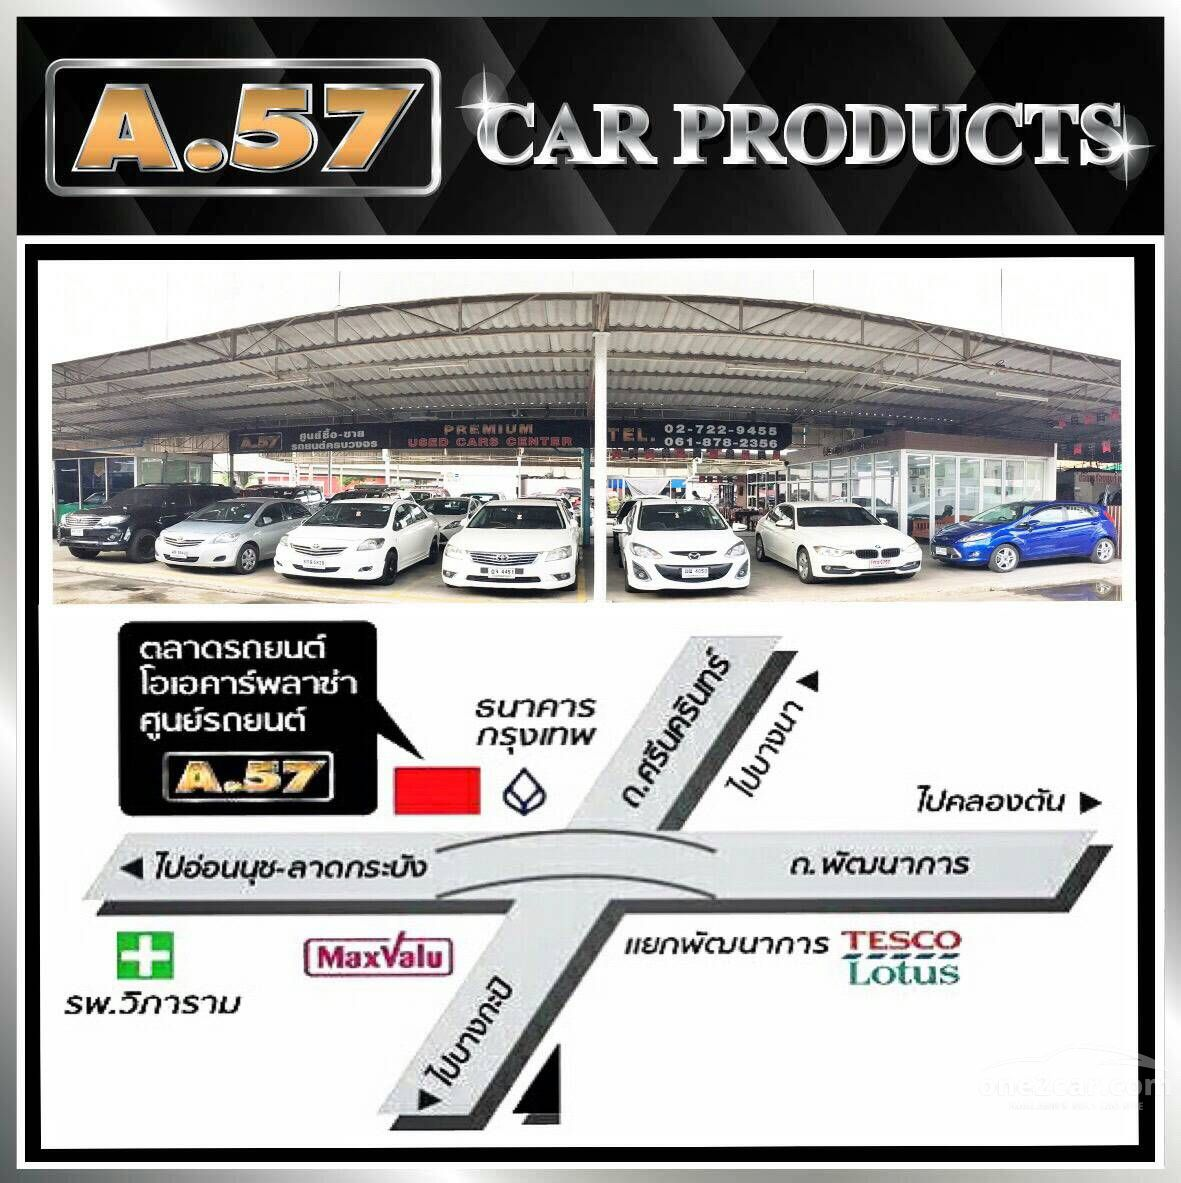 A.57 CAR PRODUCTS